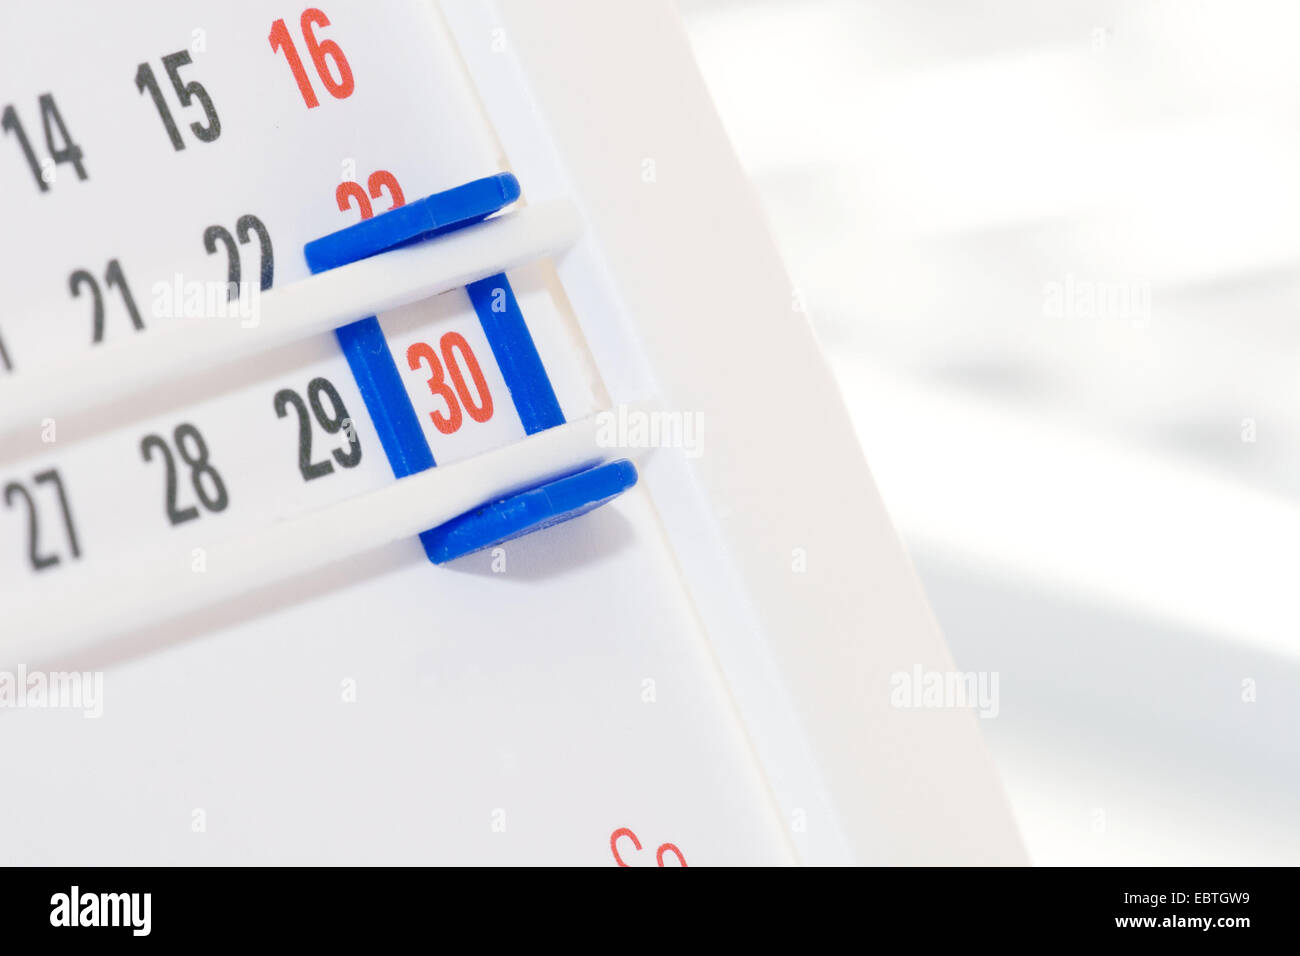 calendar marking the last day of a month - Stock Image